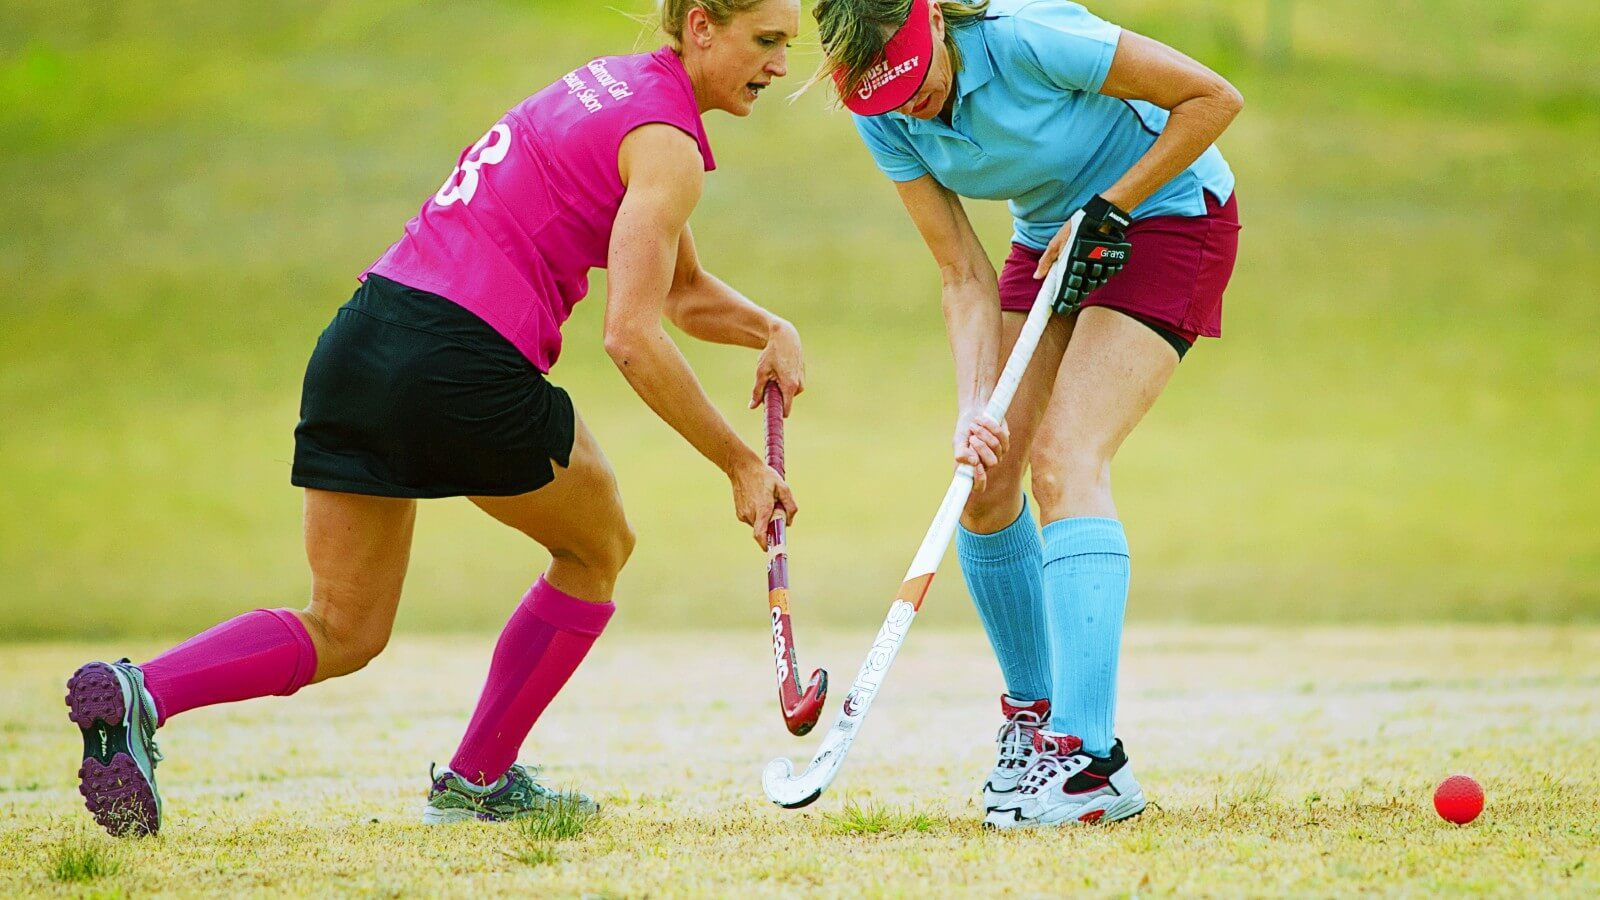 Two women playing hockey banner image